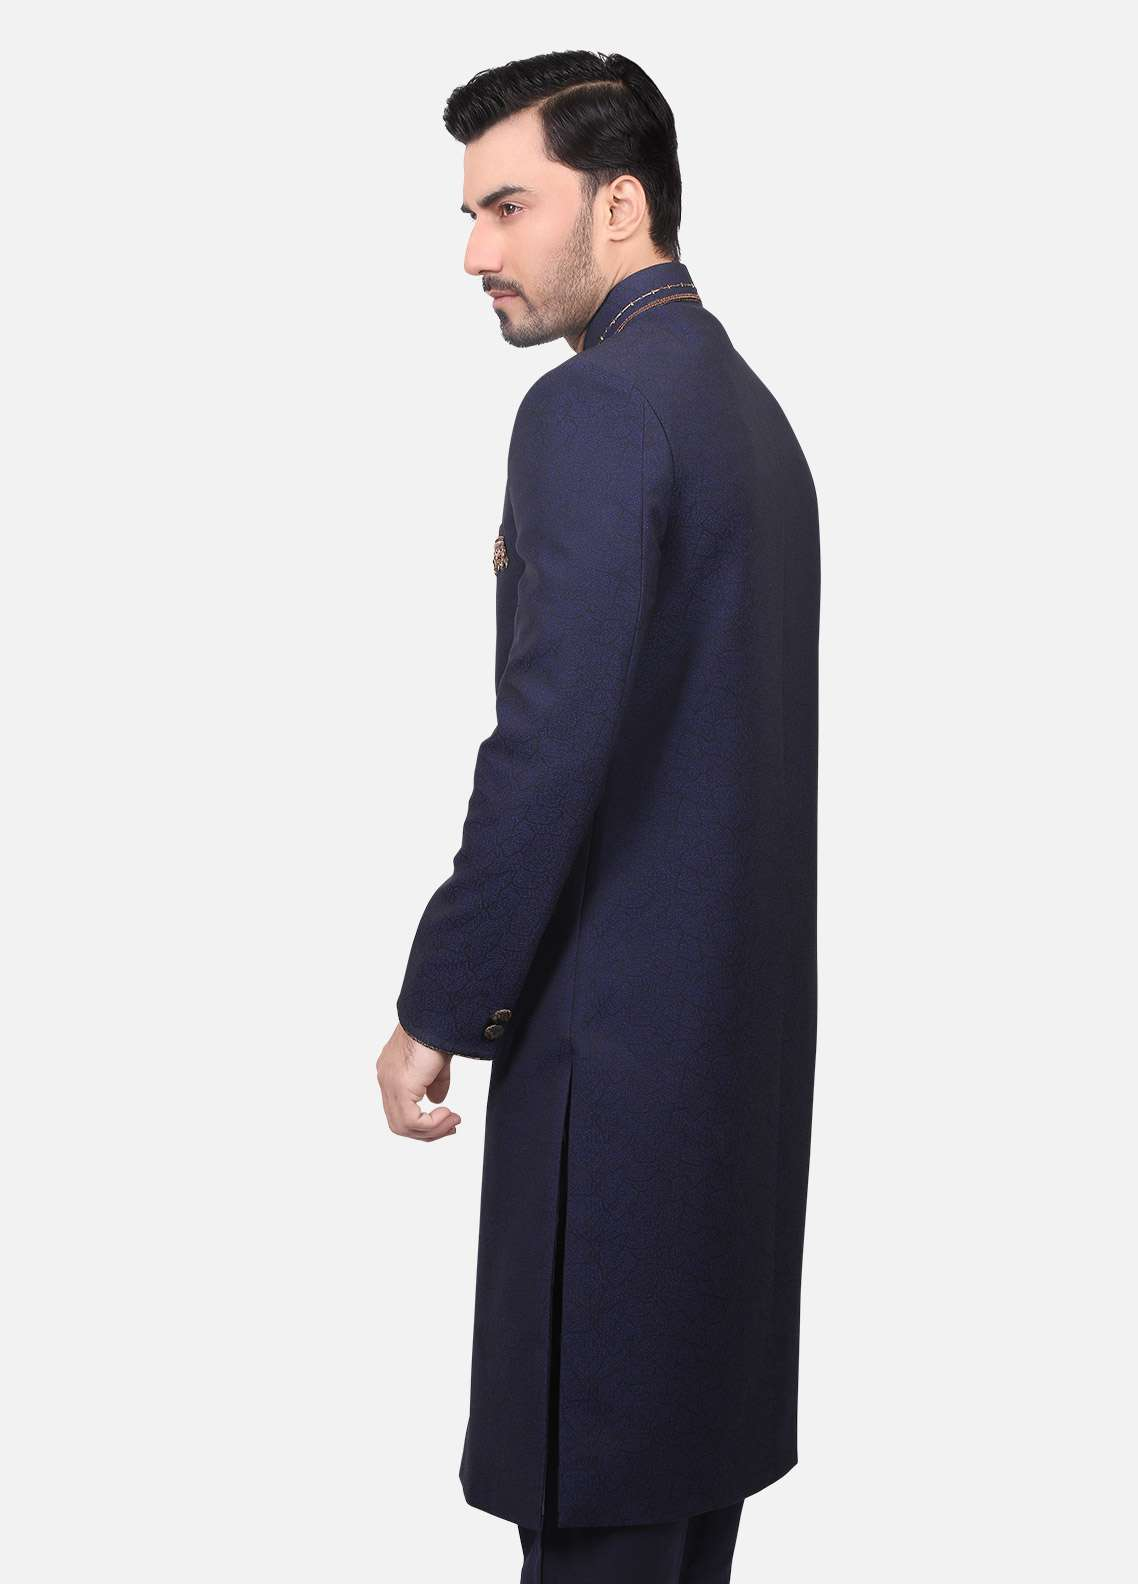 Edenrobe Jamawar Embroidered Sherwanis for Men - Navy Blue EDM18SH 7144